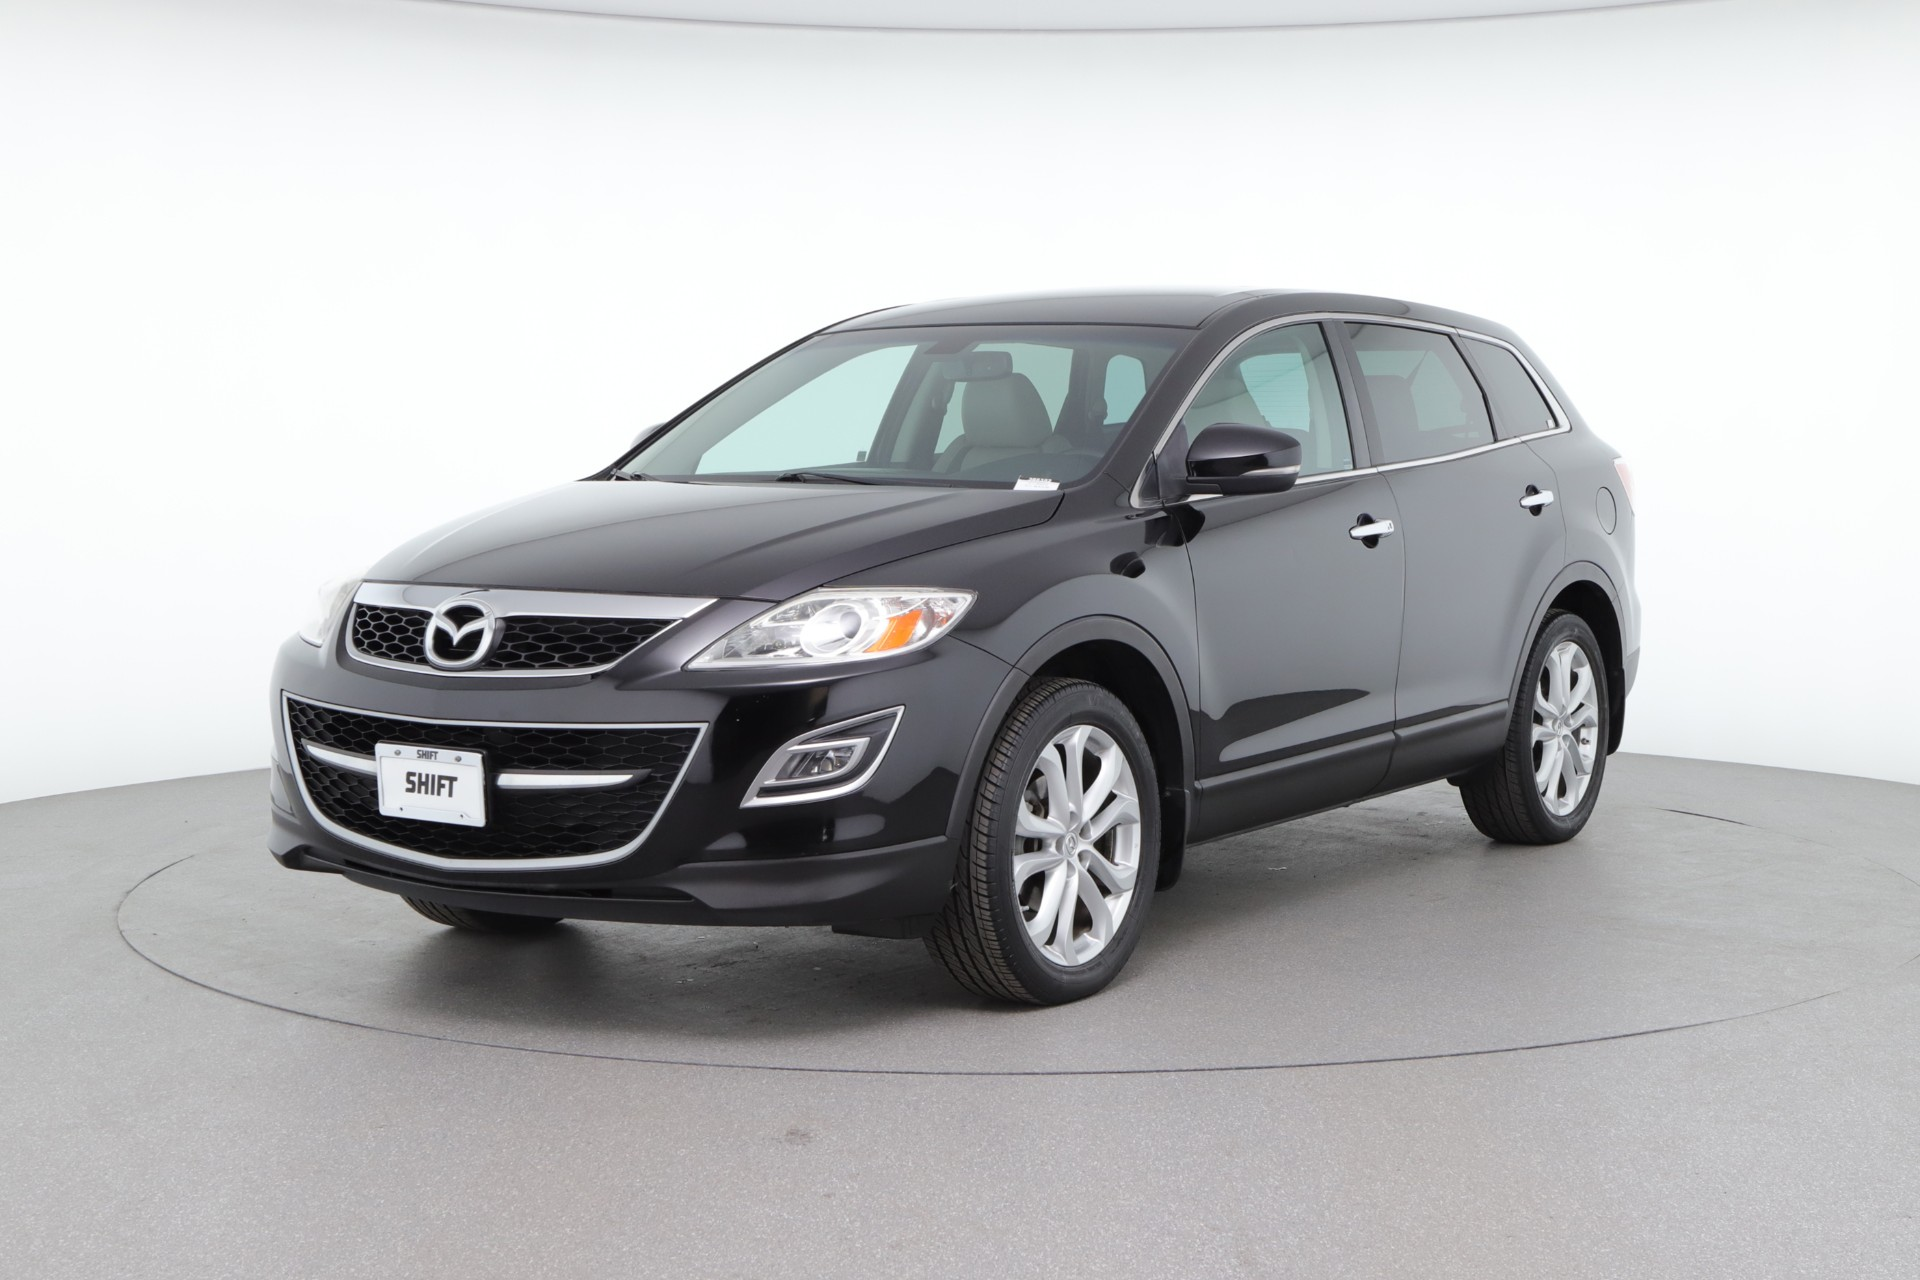 2012 Mazda CX-9 Grand Touring (from $15,400)